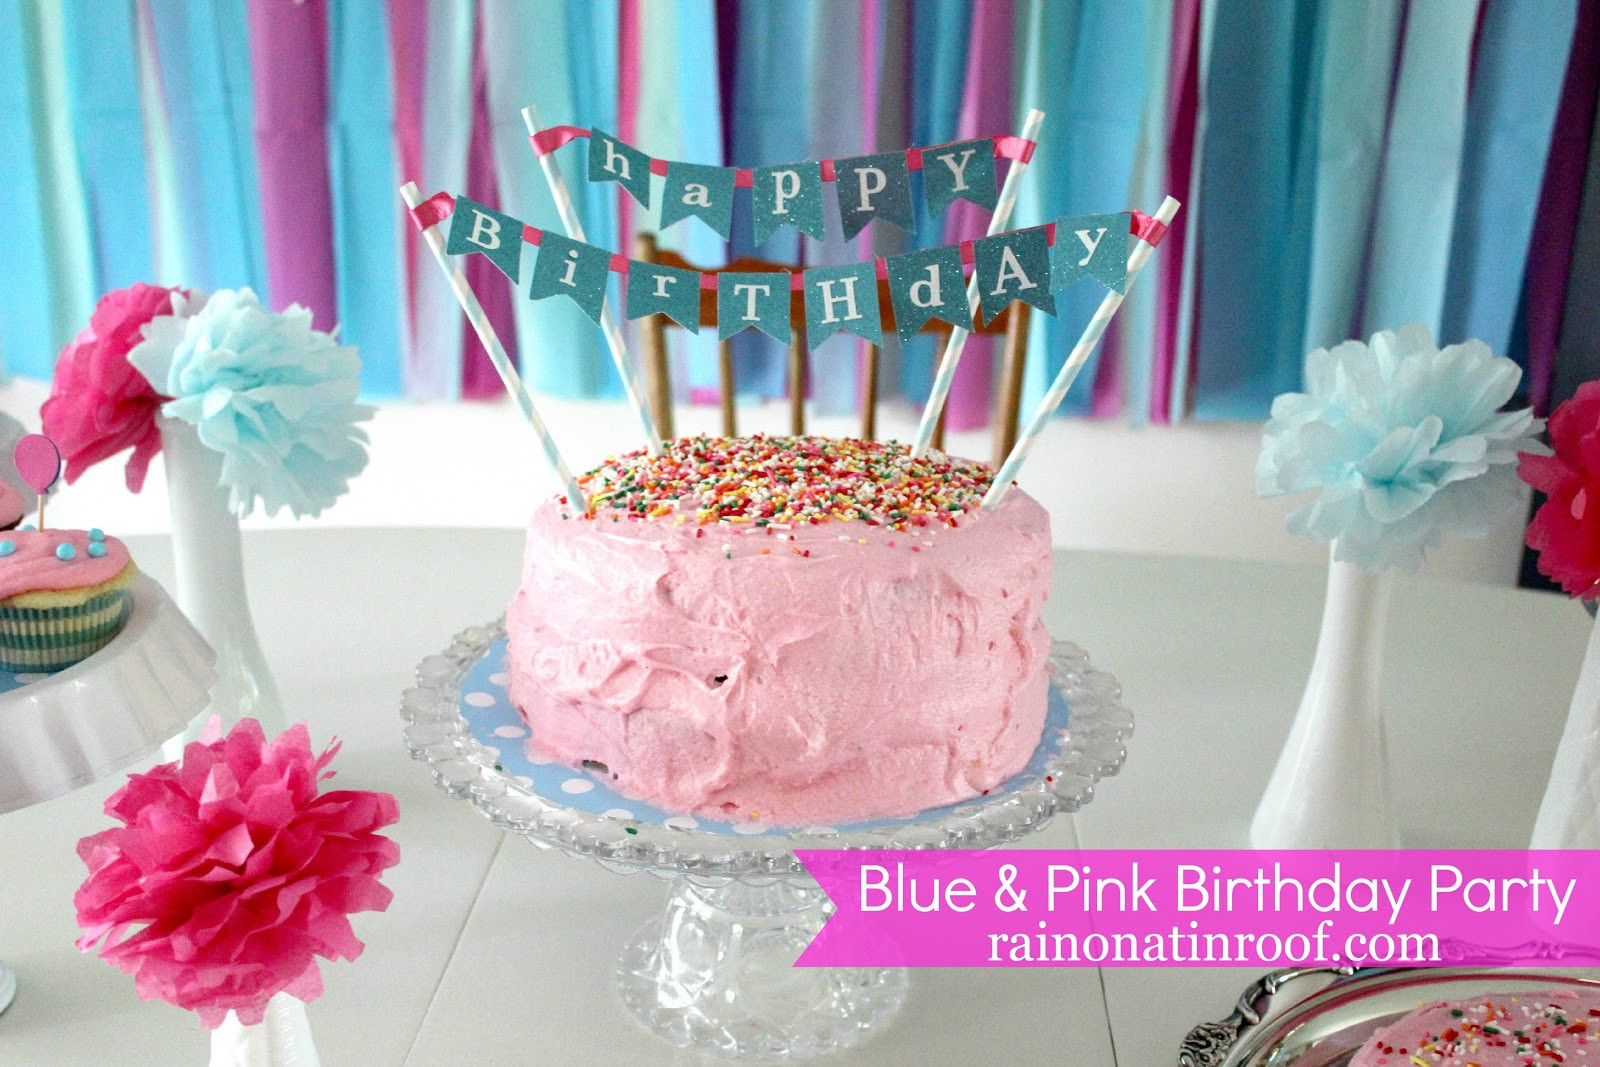 Best ideas about Pink Birthday Party Decorations . Save or Pin A Stylish Blue and Pink Birthday Party Now.